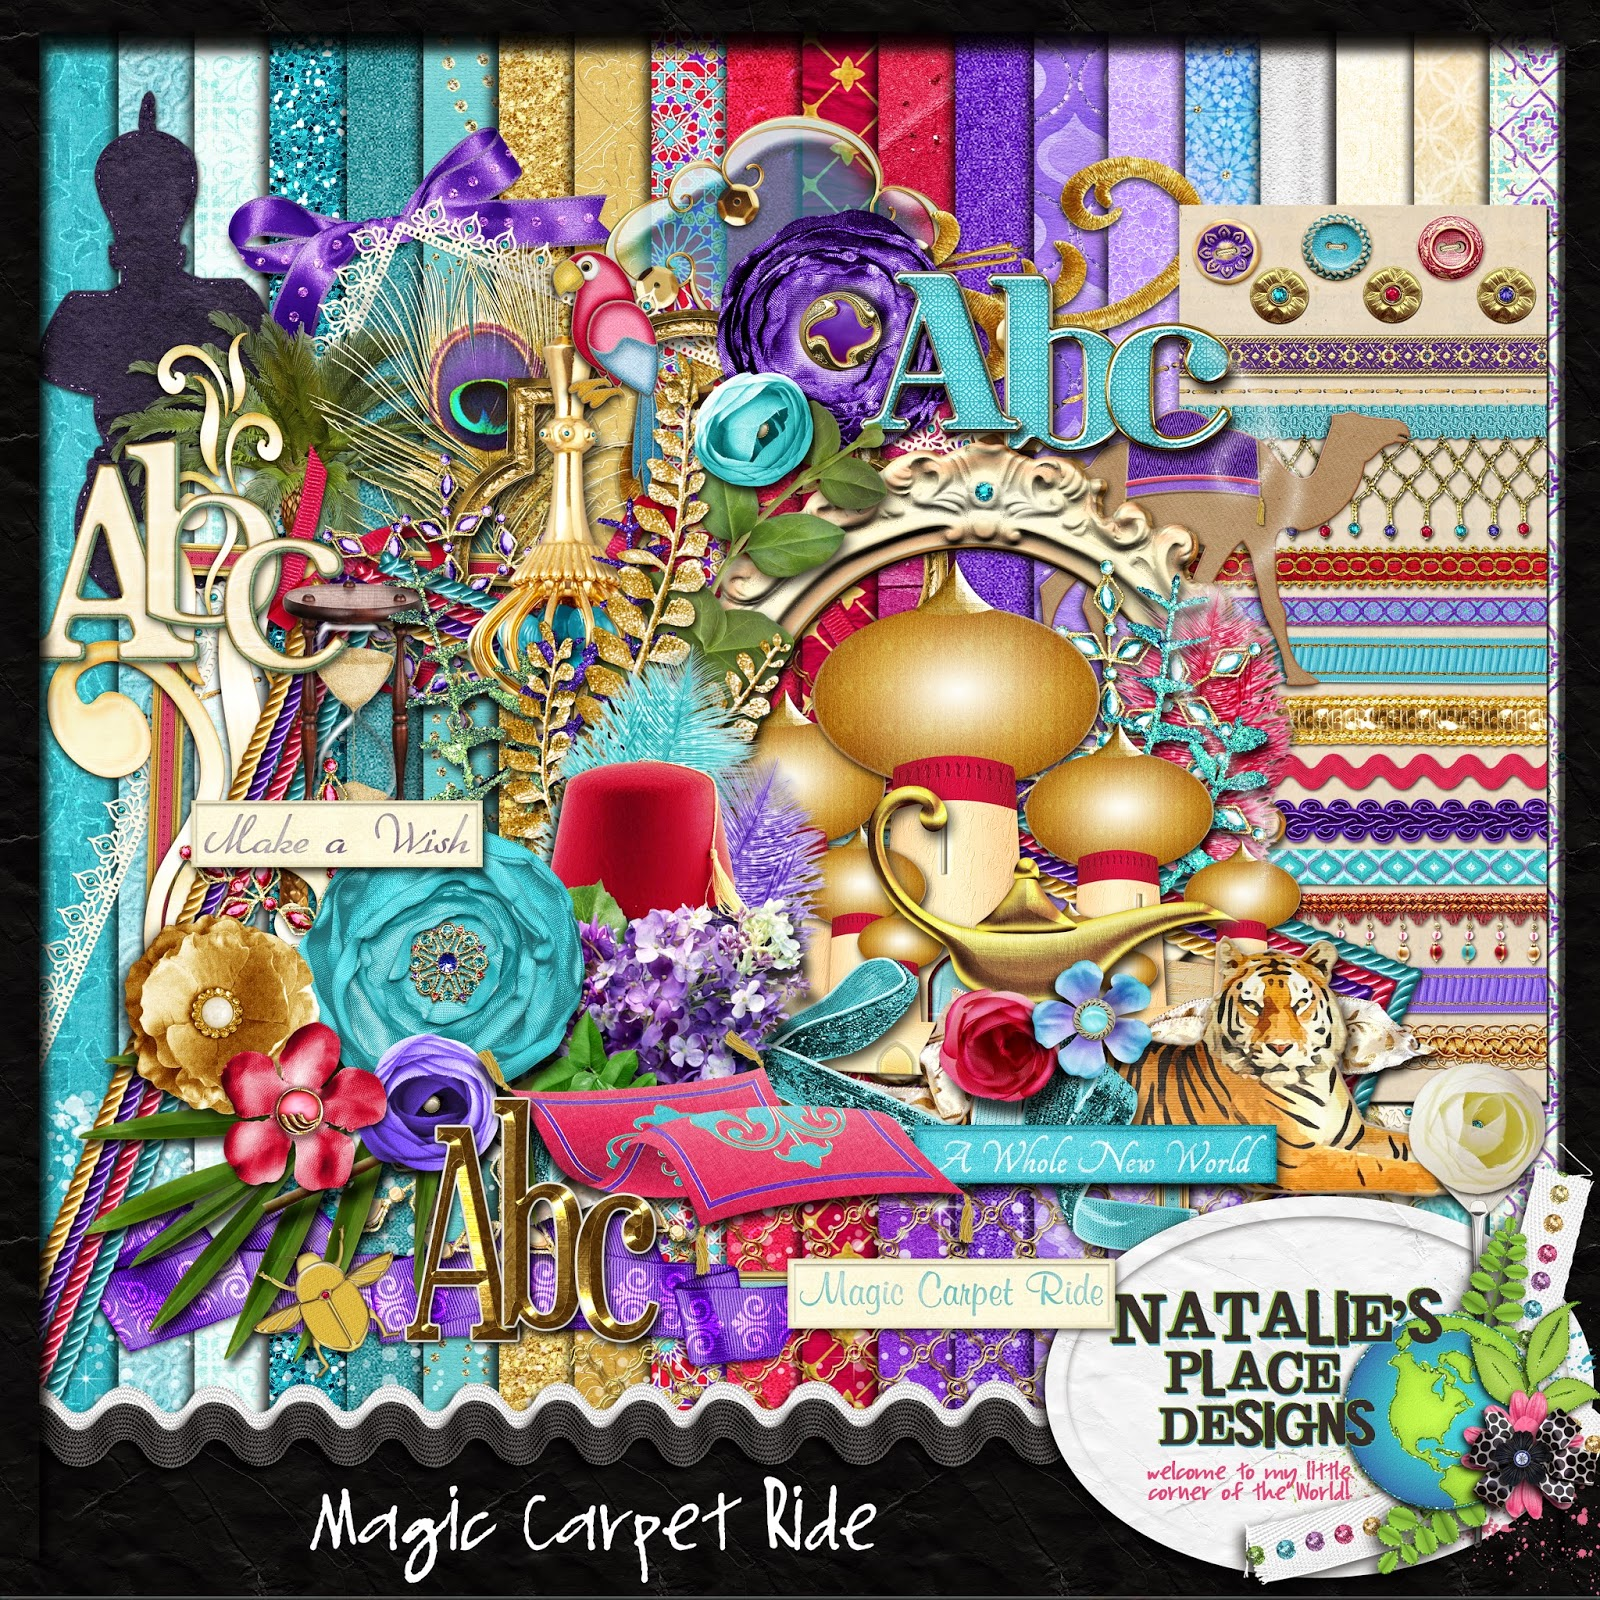 http://www.nataliesplacedesigns.com/store/p476/Magic_Carpet_Ride_Kit.html